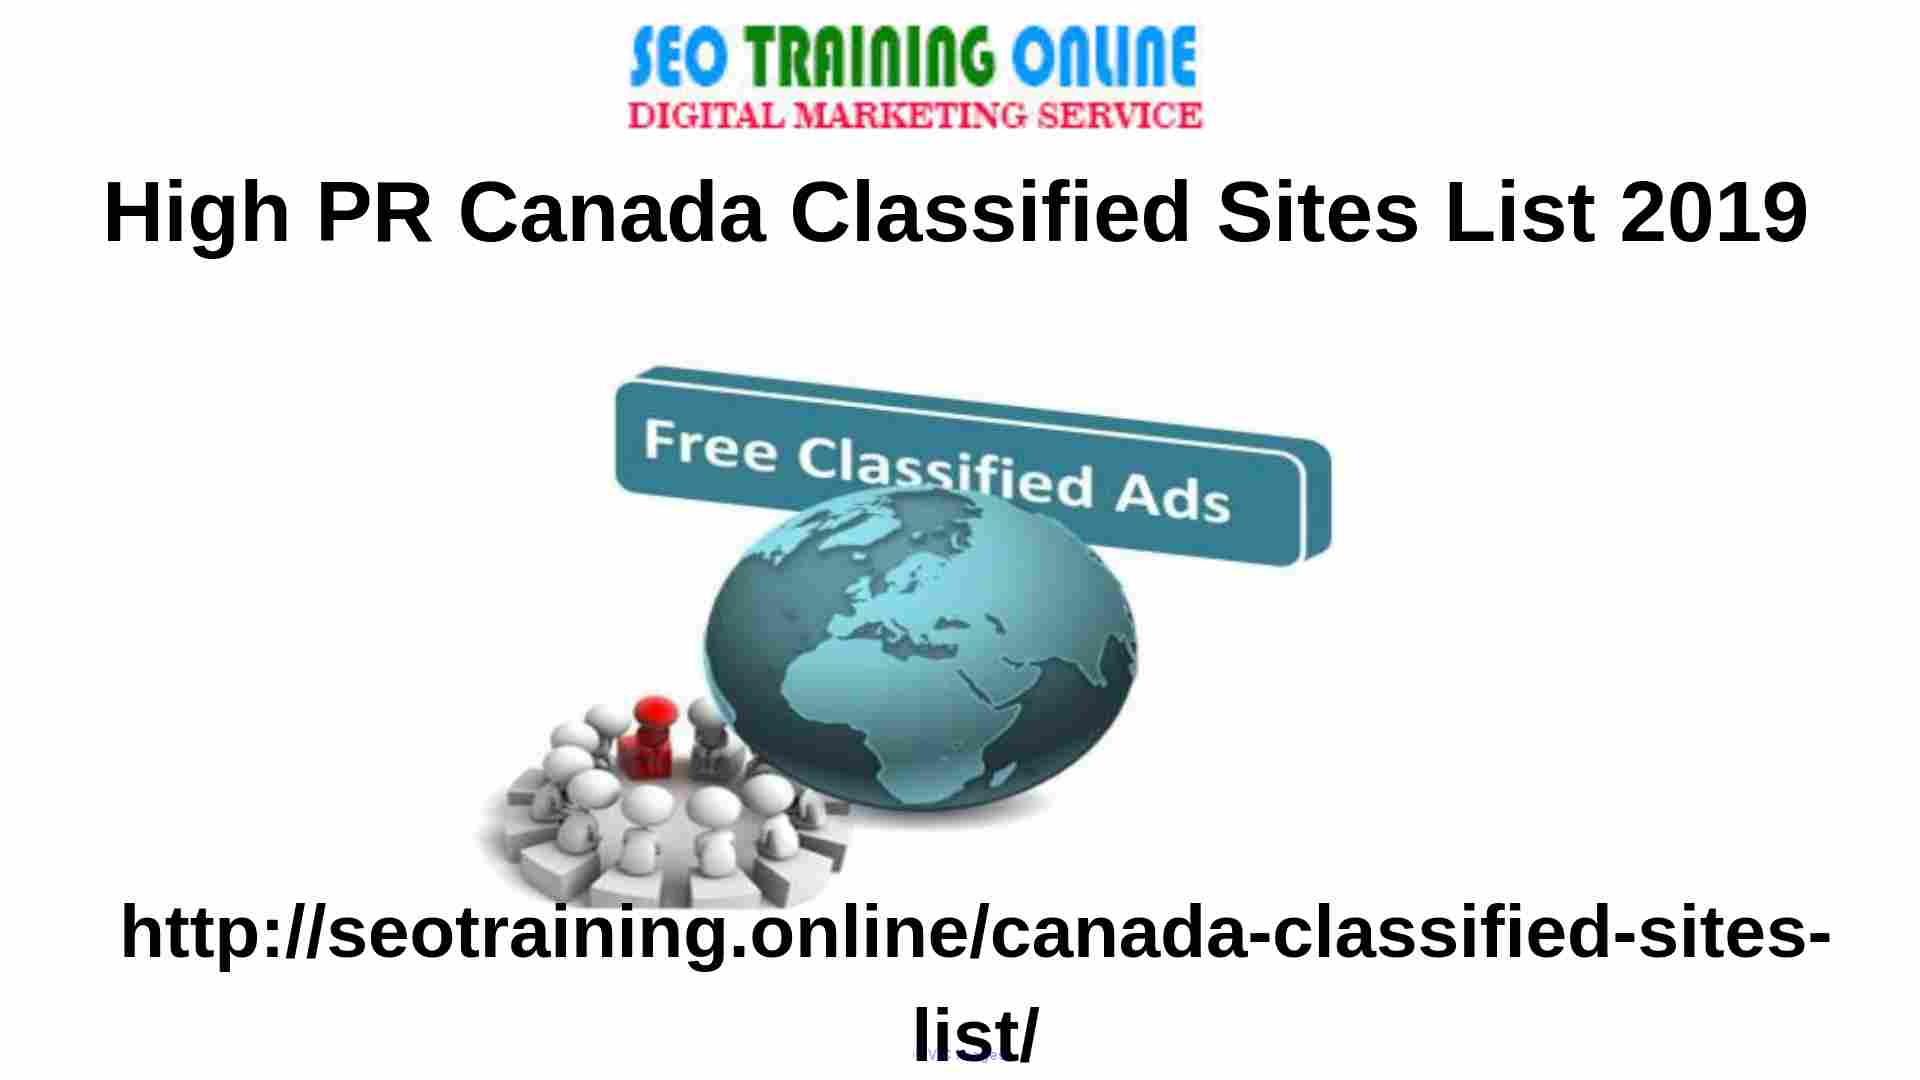 High PR Canada classified sites 2019 Calgary, Alberta, Canada Classifieds